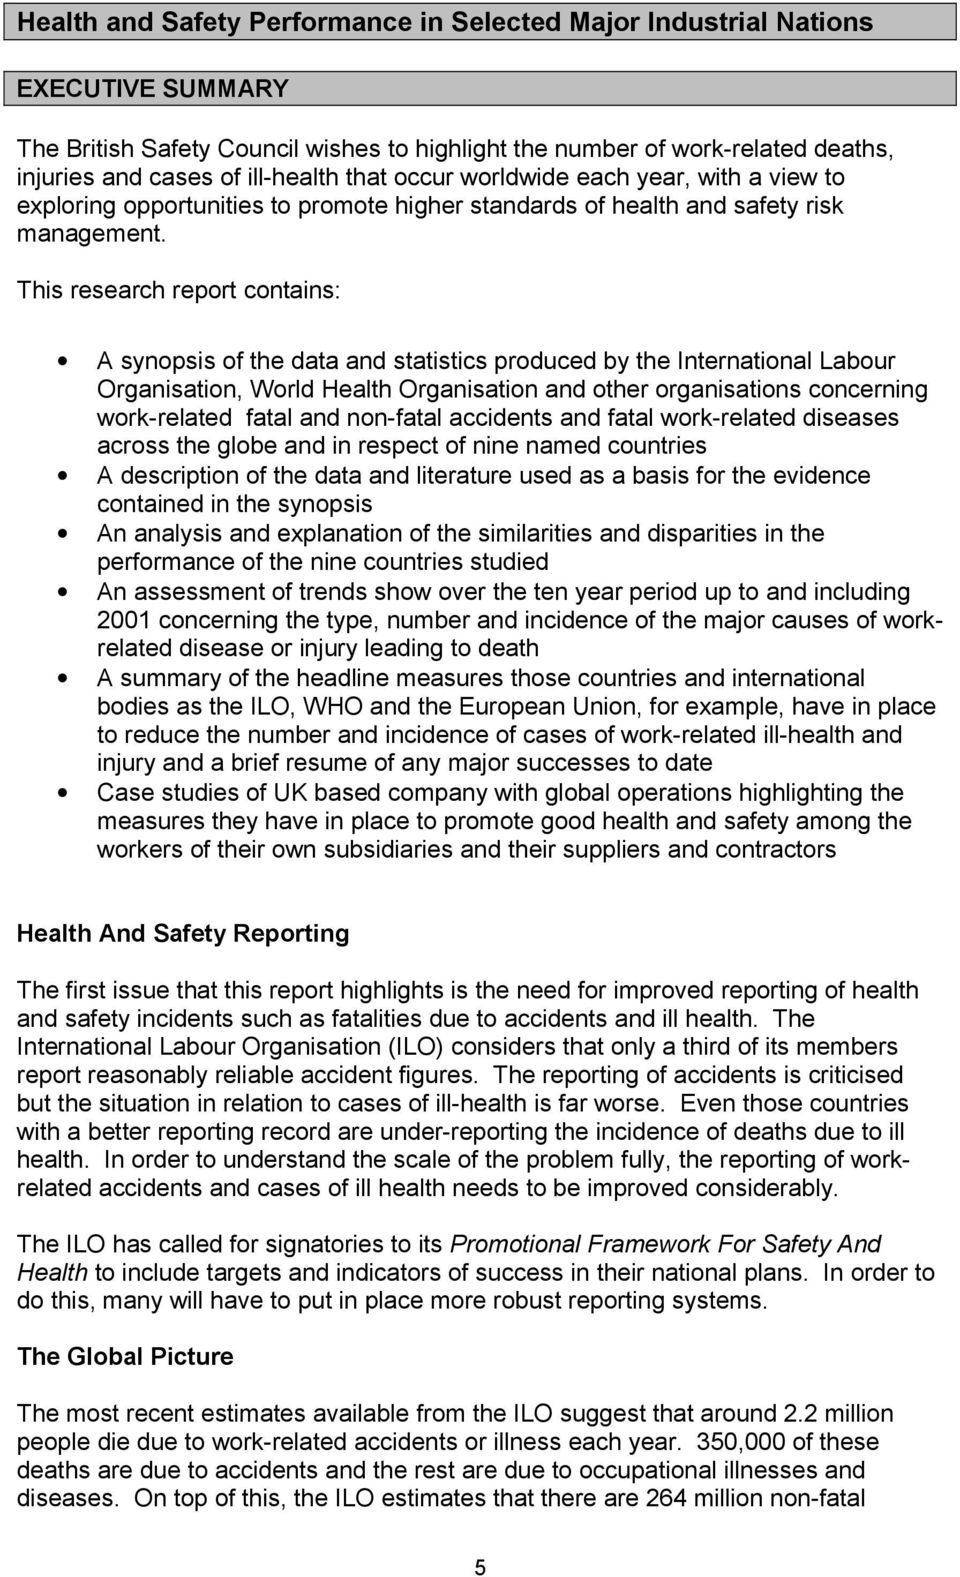 This research report contains: A synopsis of the data and statistics produced by the International Labour Organisation, World Health Organisation and other organisations concerning work-related fatal